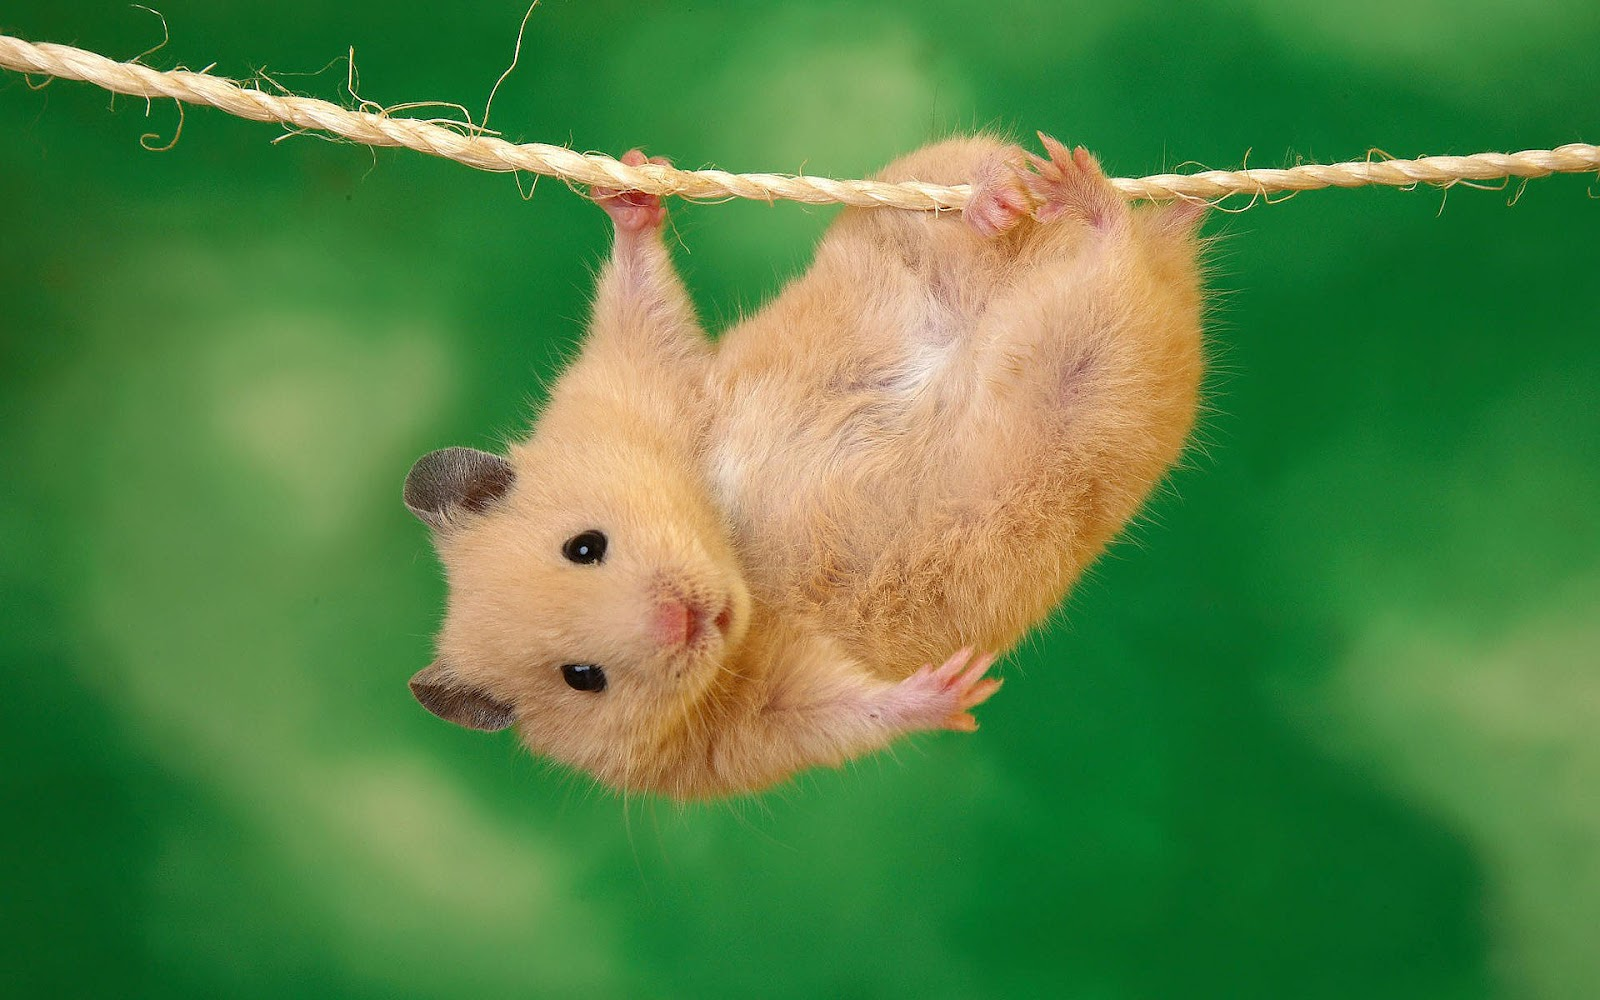 Cute Hamster Wallpaper Images amp Pictures   Becuo 1600x1000